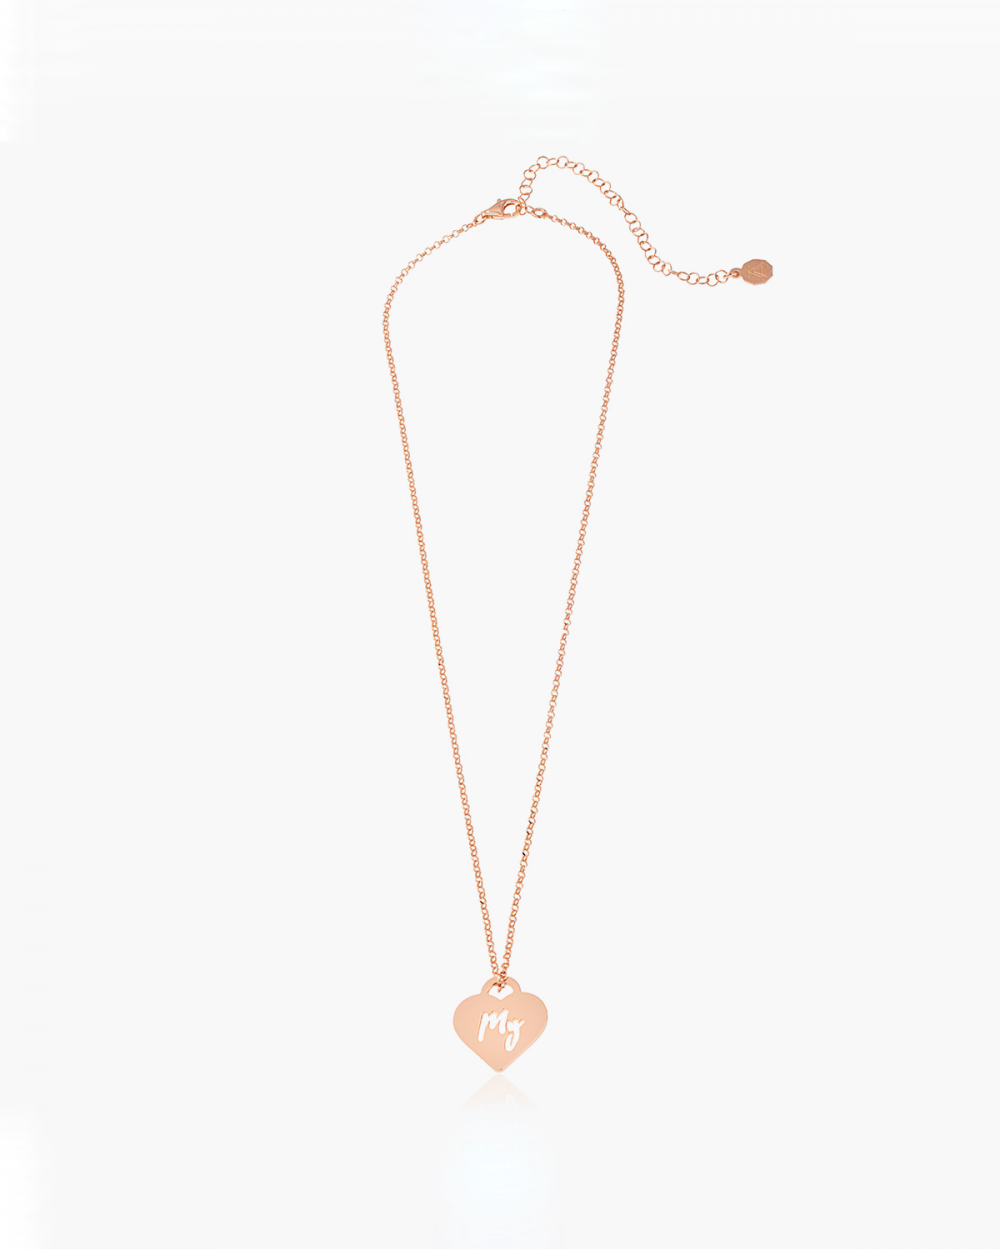 Love25 by Nove25 feat. ClioMakeUp MYFIRSTLOVE PENDANT NECKLACE NOVE25